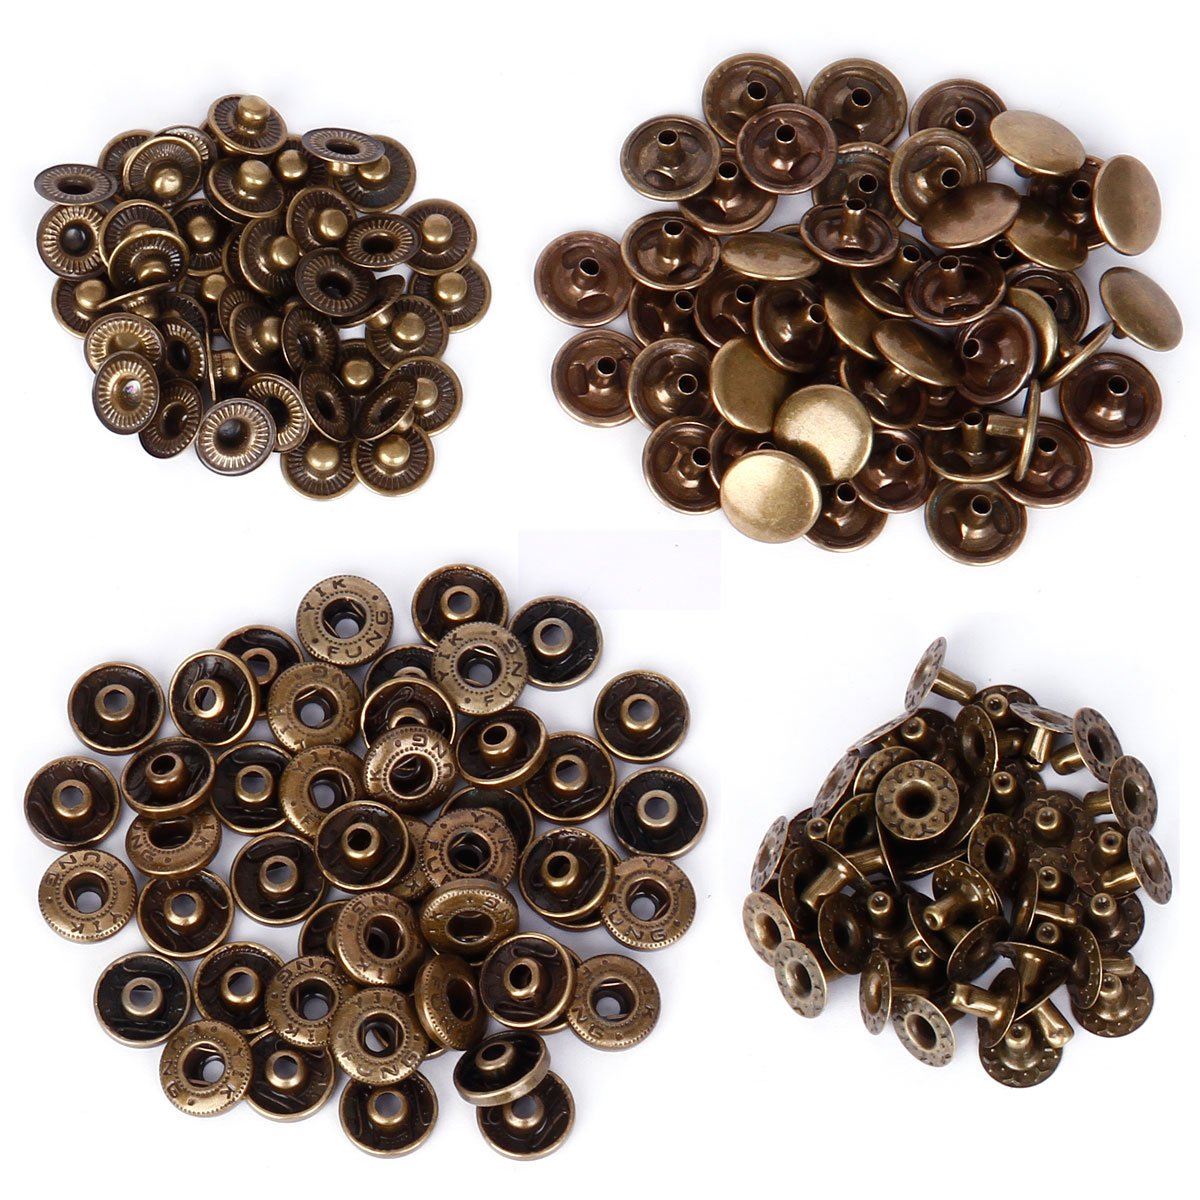 50 Sets Heavy Duty 10/12/15mm Snap Fasteners Press Studs Poppers Buttons Surepromise